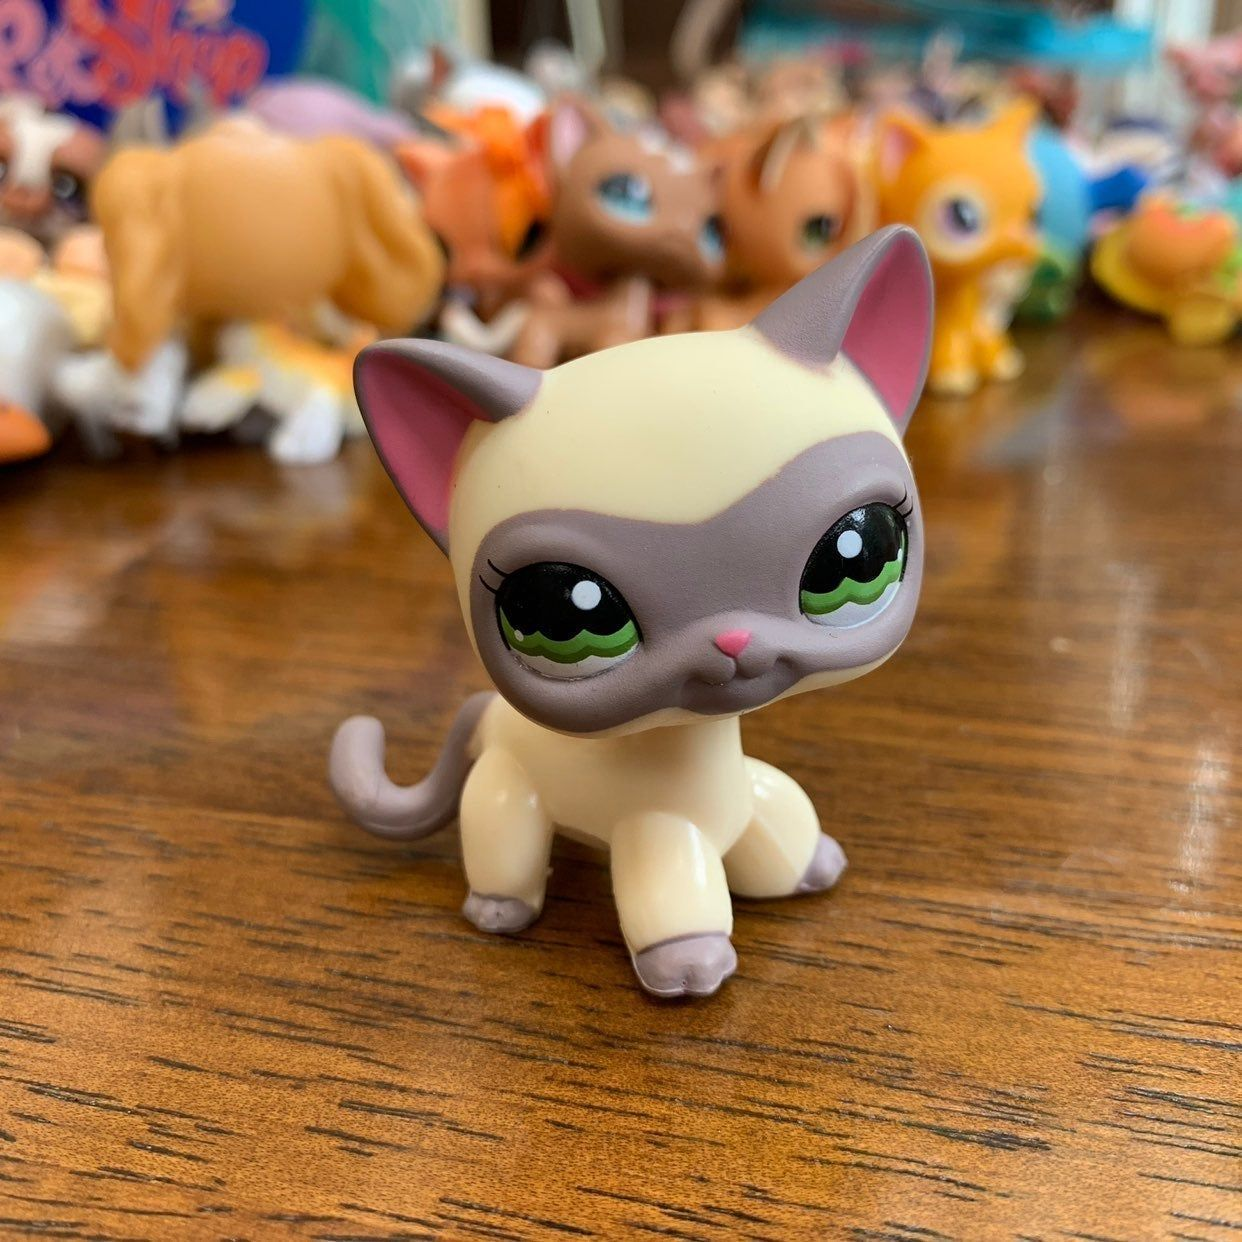 Lps Short Hair Cat Rare Great Condition Worth 55 On Amazon